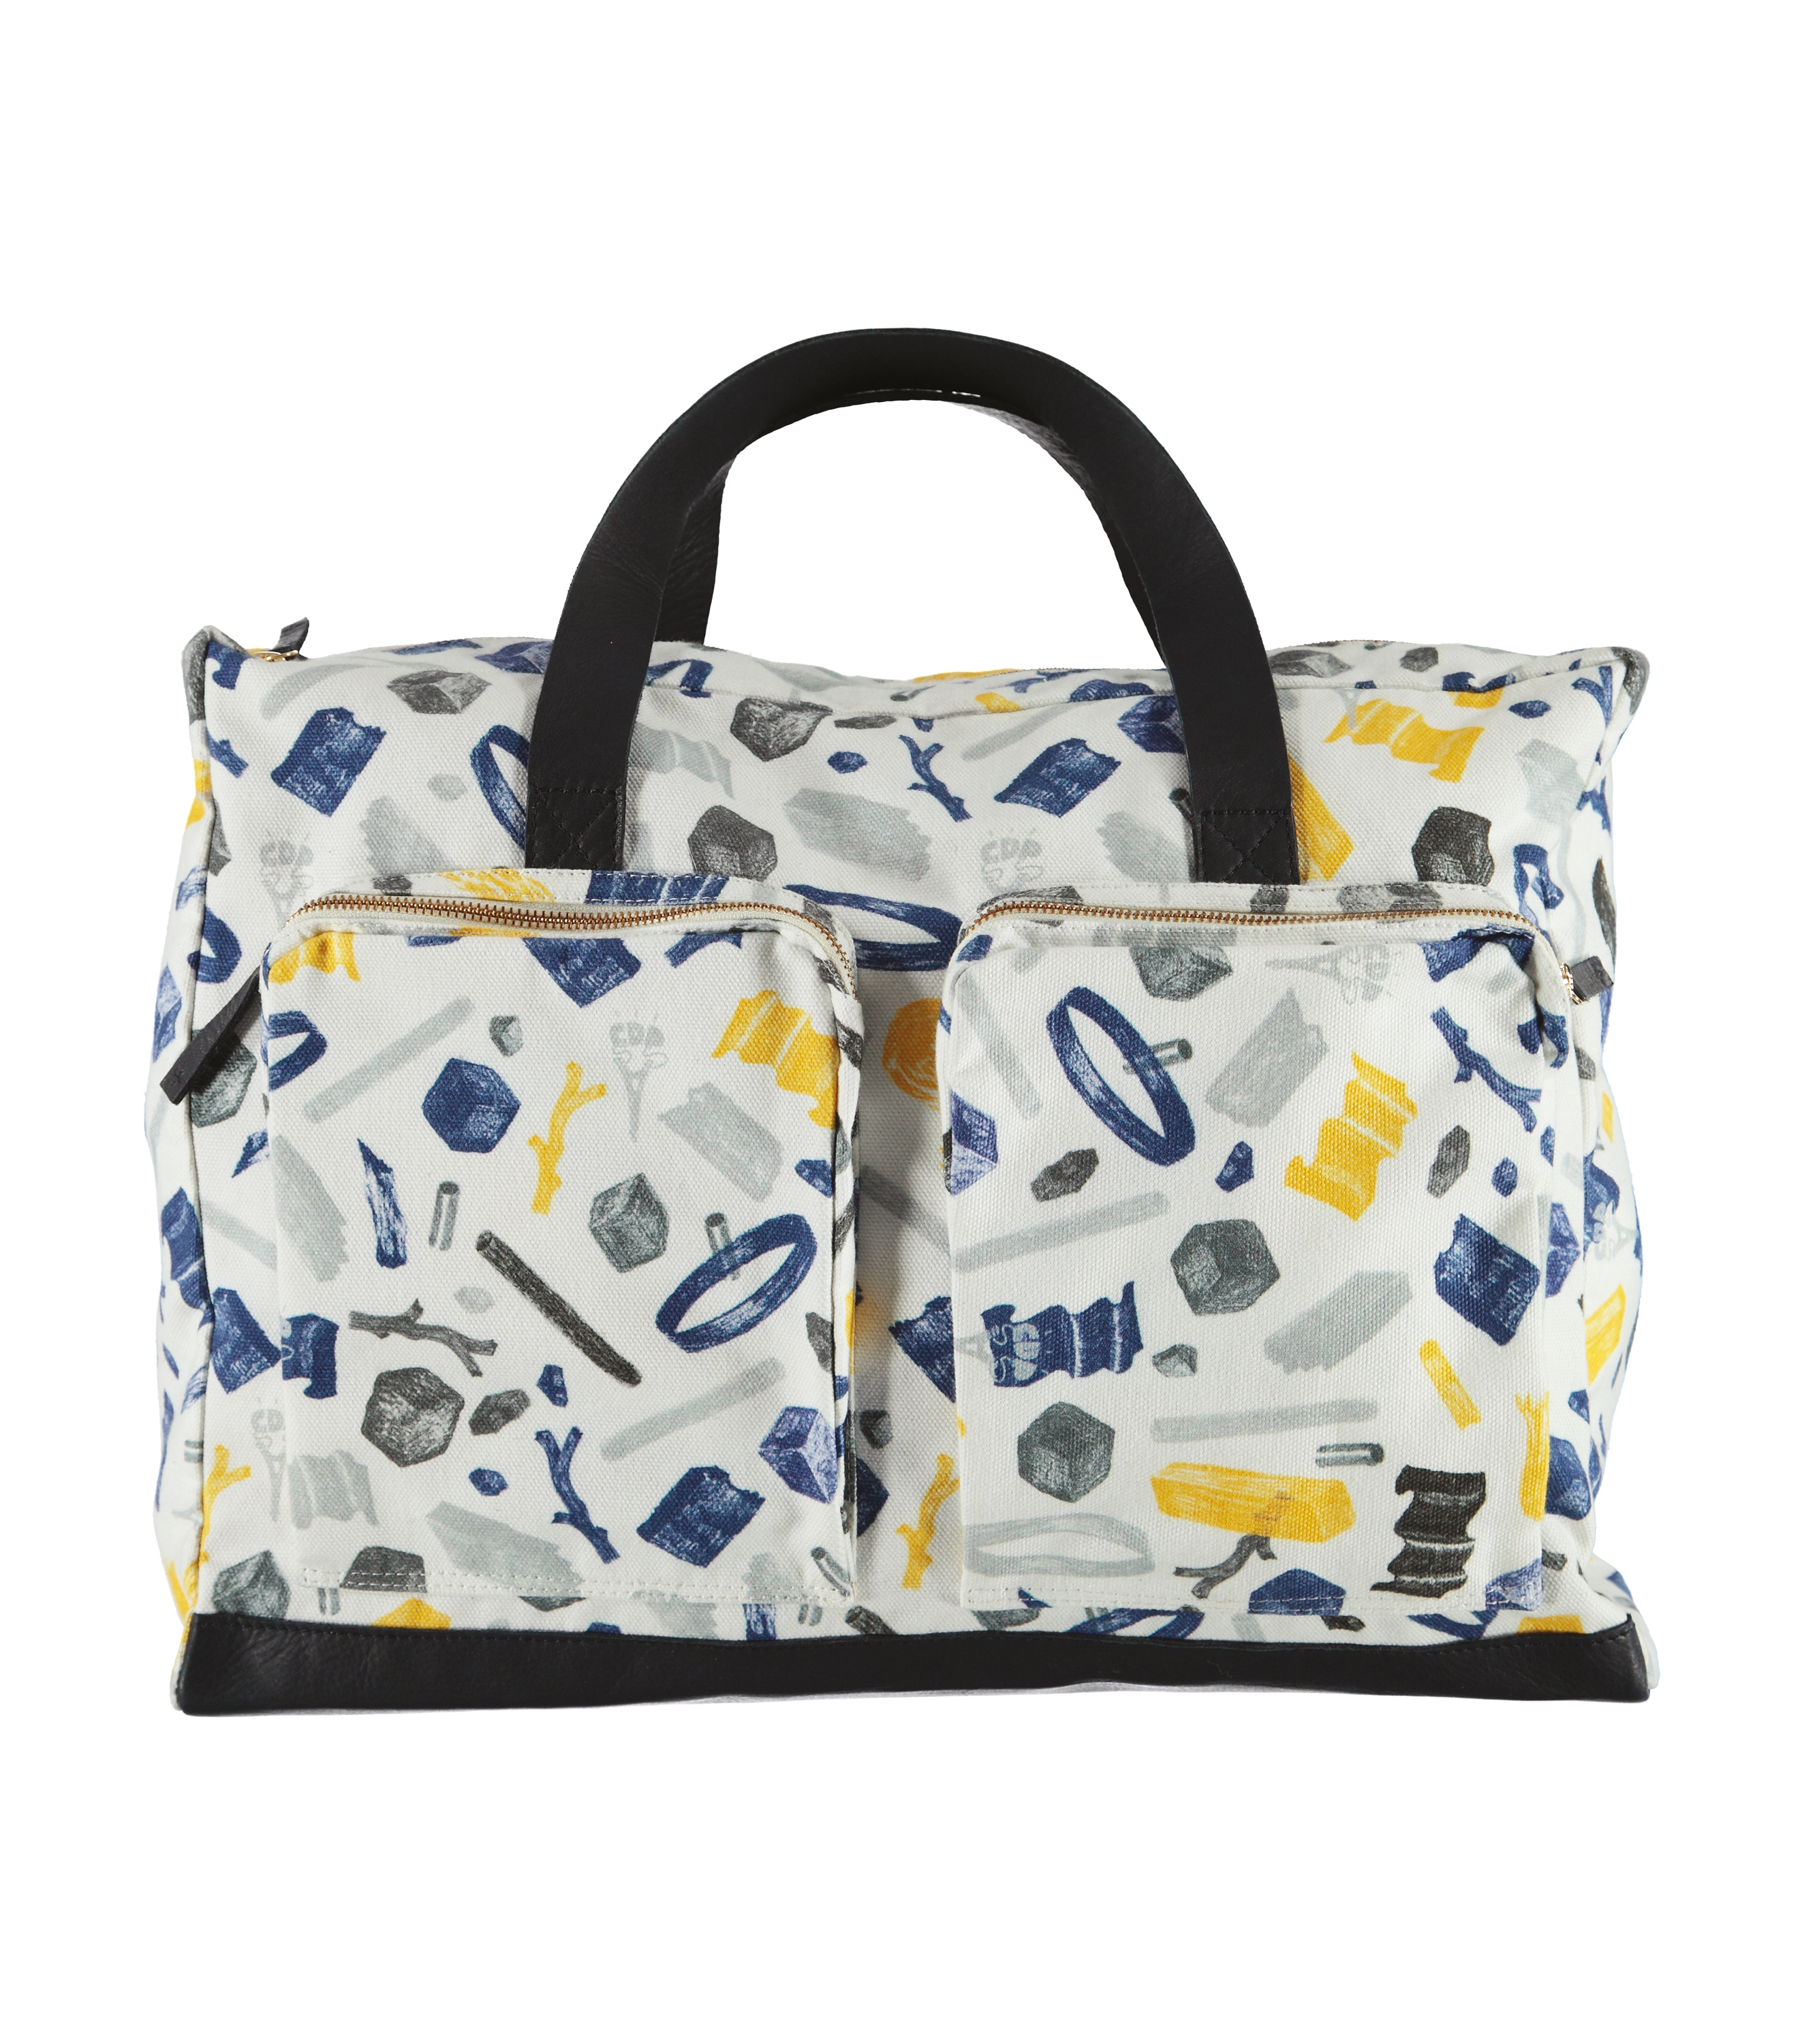 Printed Bag 01 - Chaos print